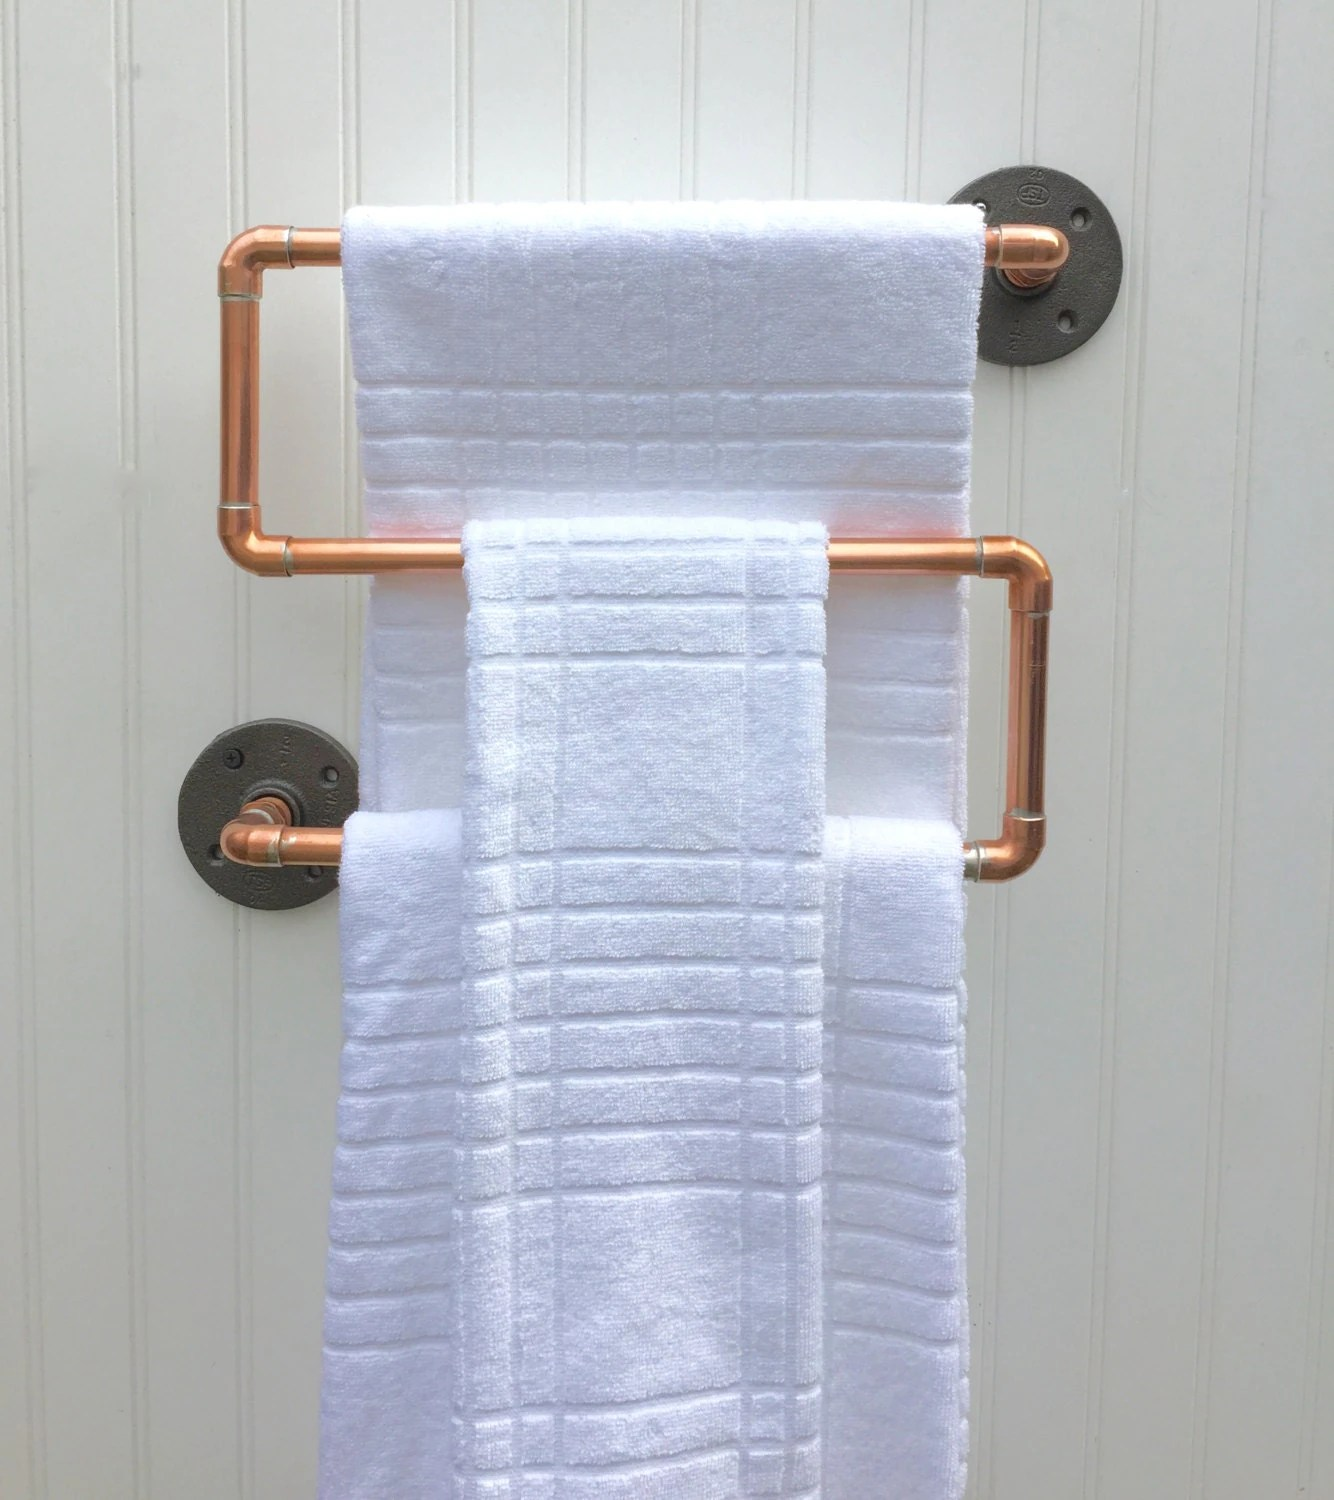 Adhesive Shower Curtain Rod Holders Copper Pipe Towel Rack Industrial Towel Bar Modern By